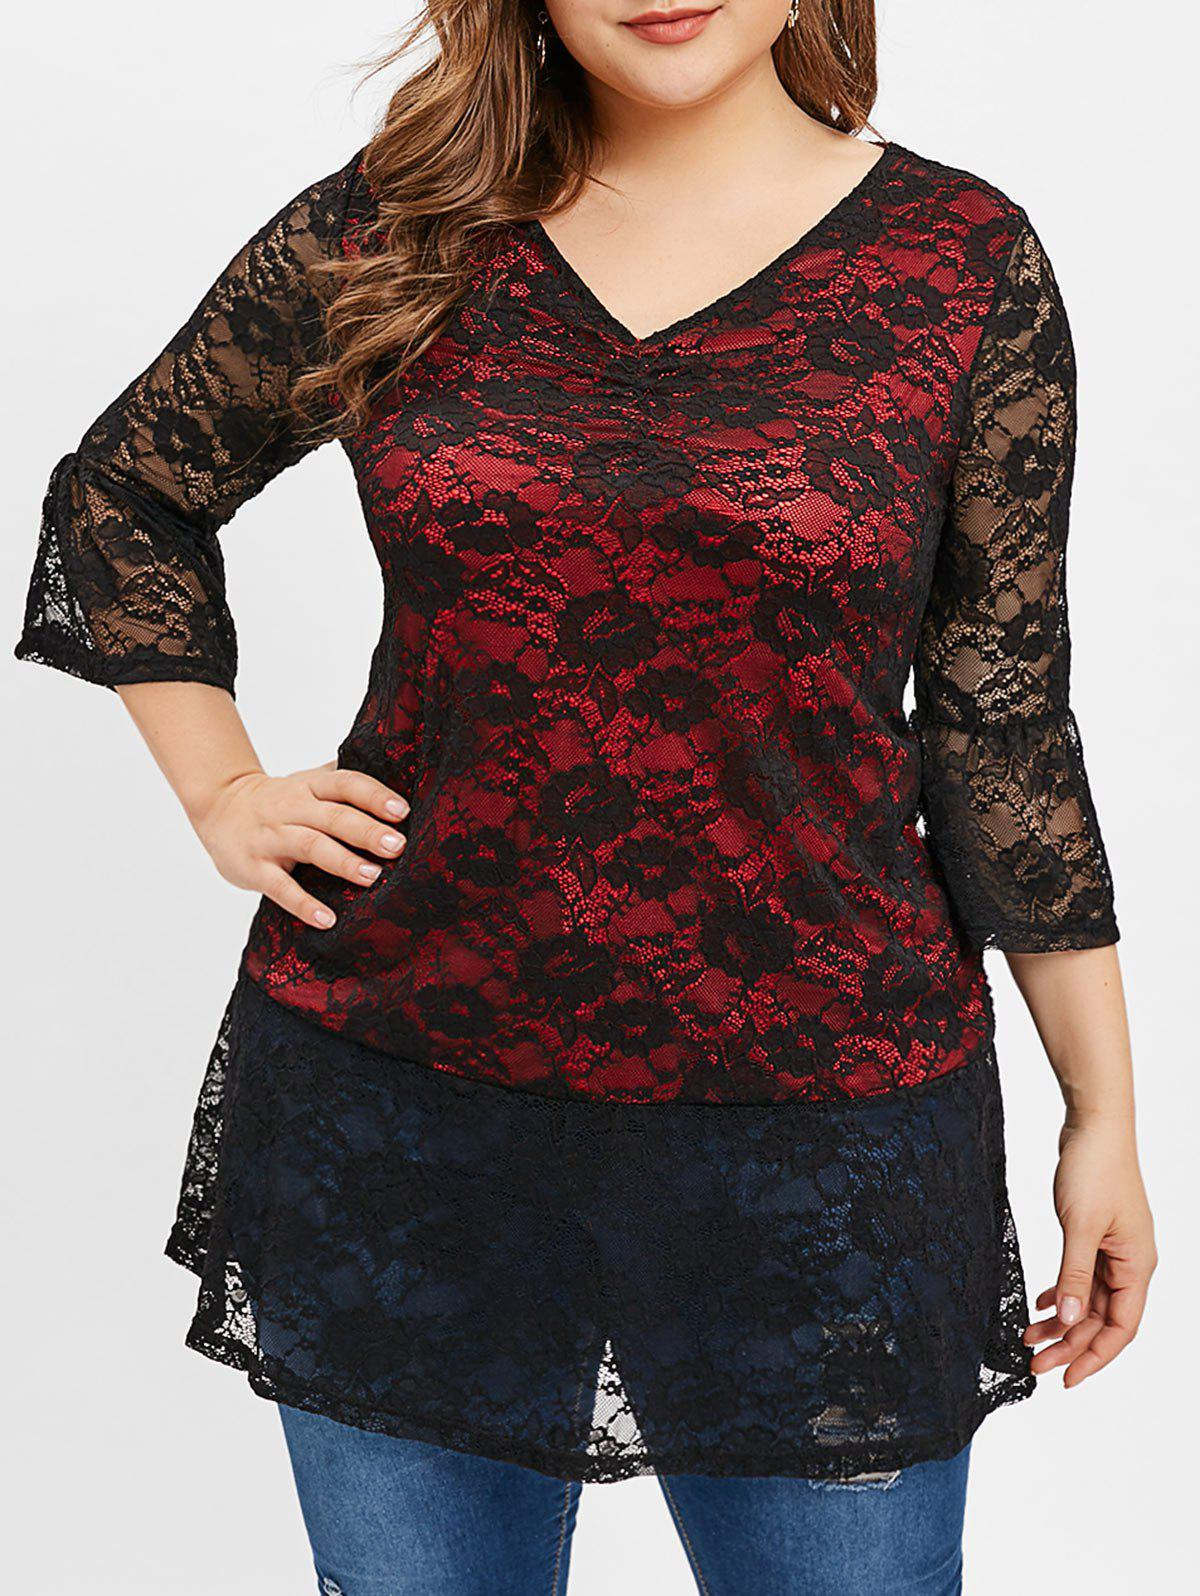 Plus Size Sheer Lace Overlay Tunic Blouse